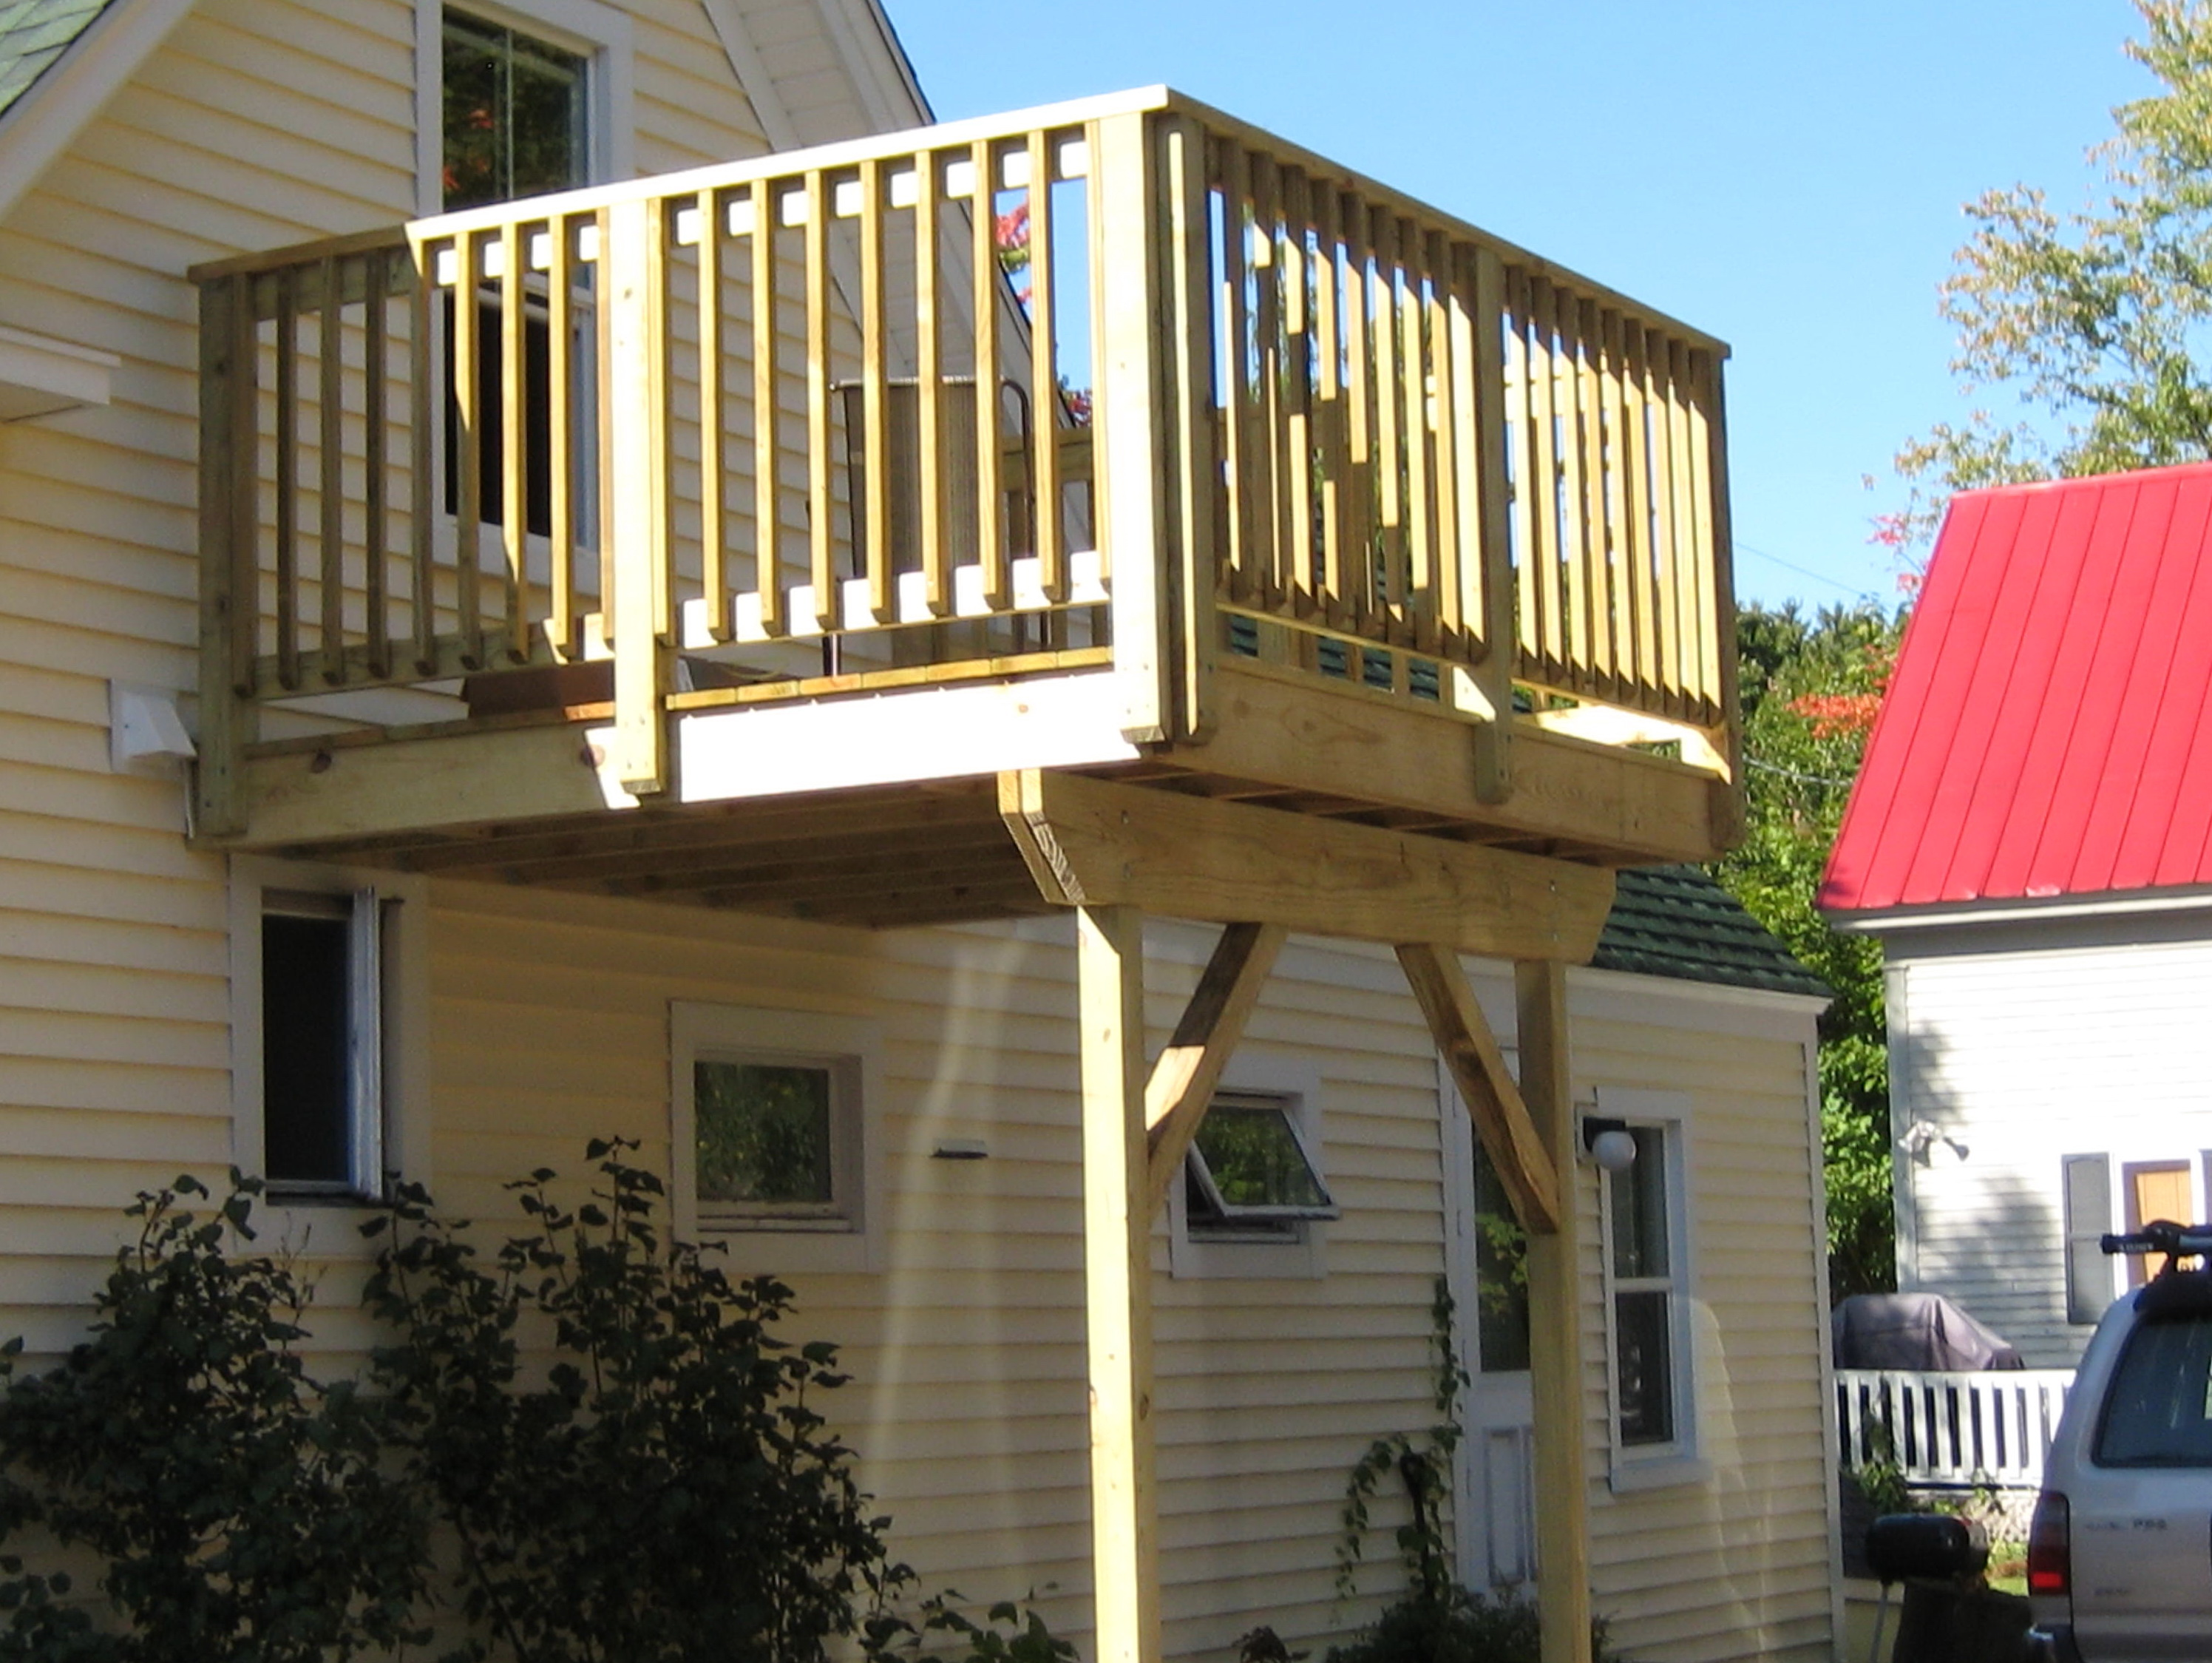 Second Story Deck Pictures  Home Design Ideas